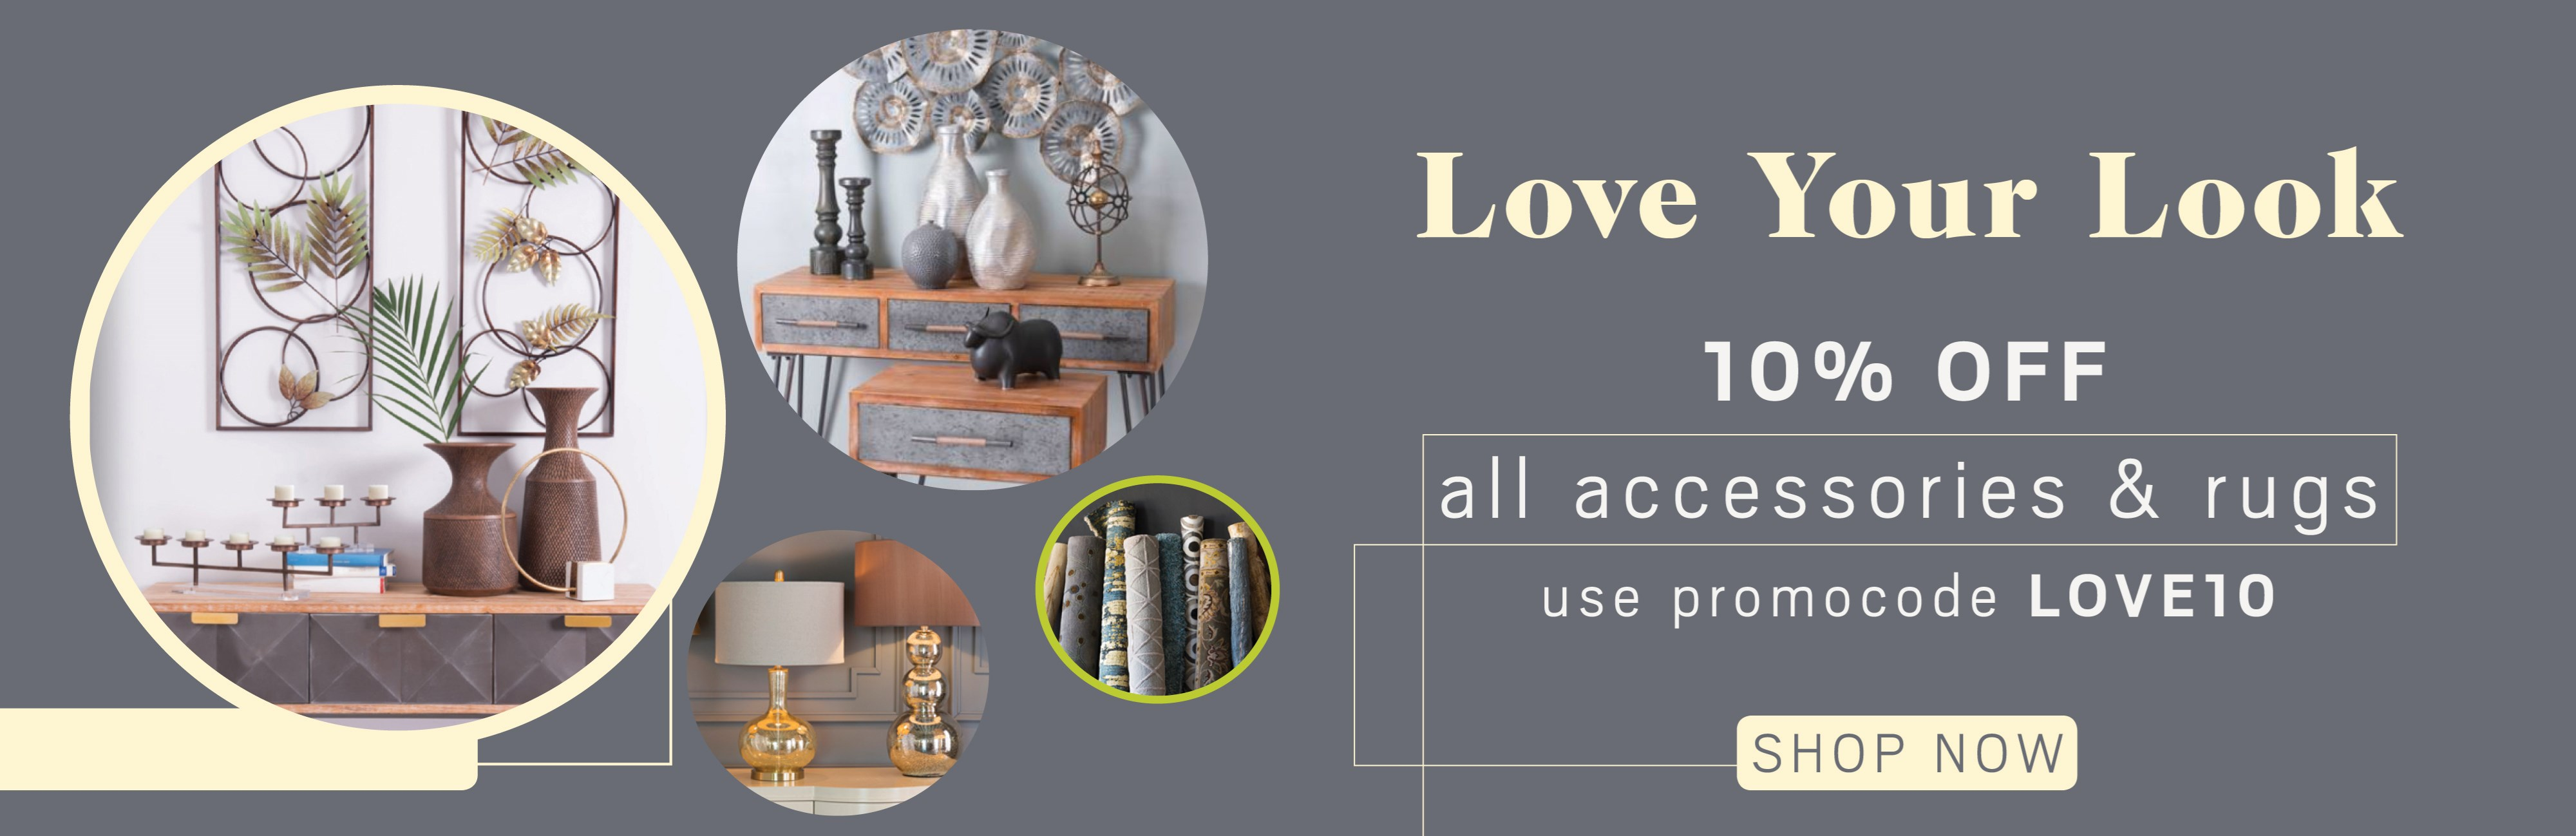 10% off all accessories and rugs; see store for details.